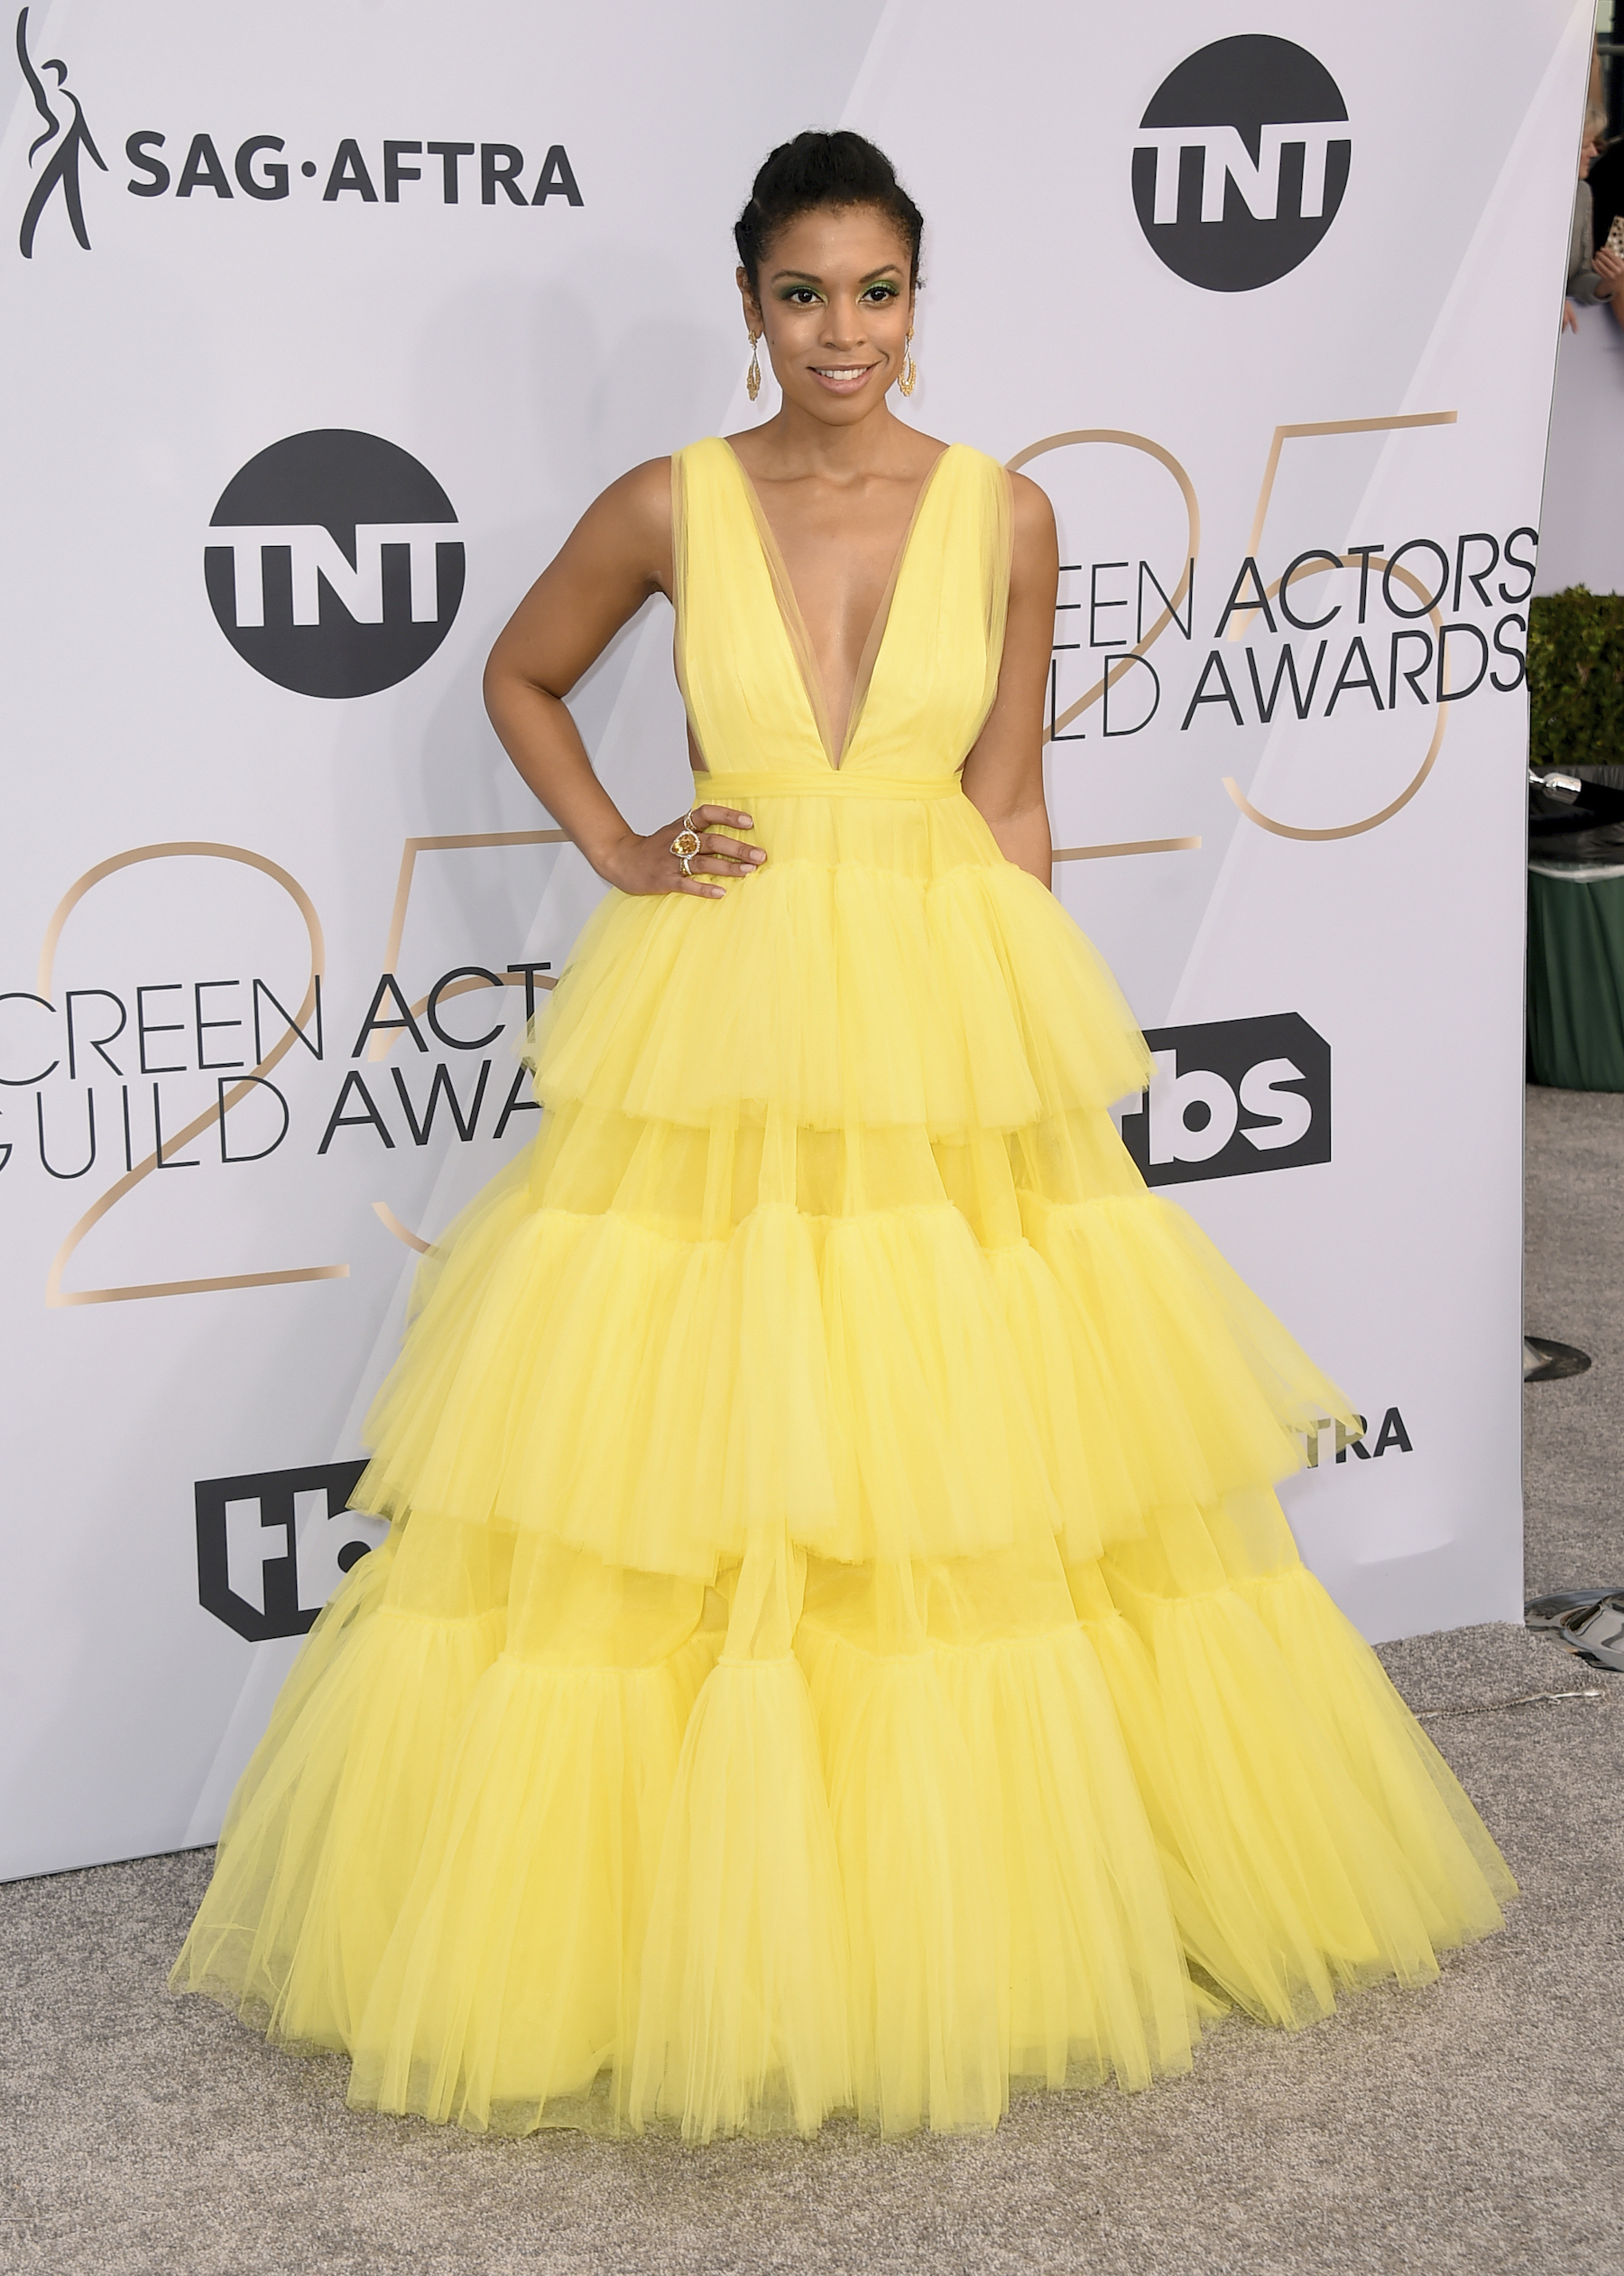 <div class='meta'><div class='origin-logo' data-origin='AP'></div><span class='caption-text' data-credit='Jordan Strauss/Invision/AP'>Susan Kelechi Watson arrives at the 25th annual Screen Actors Guild Awards at the Shrine Auditorium & Expo Hall on Sunday, Jan. 27, 2019, in Los Angeles.</span></div>